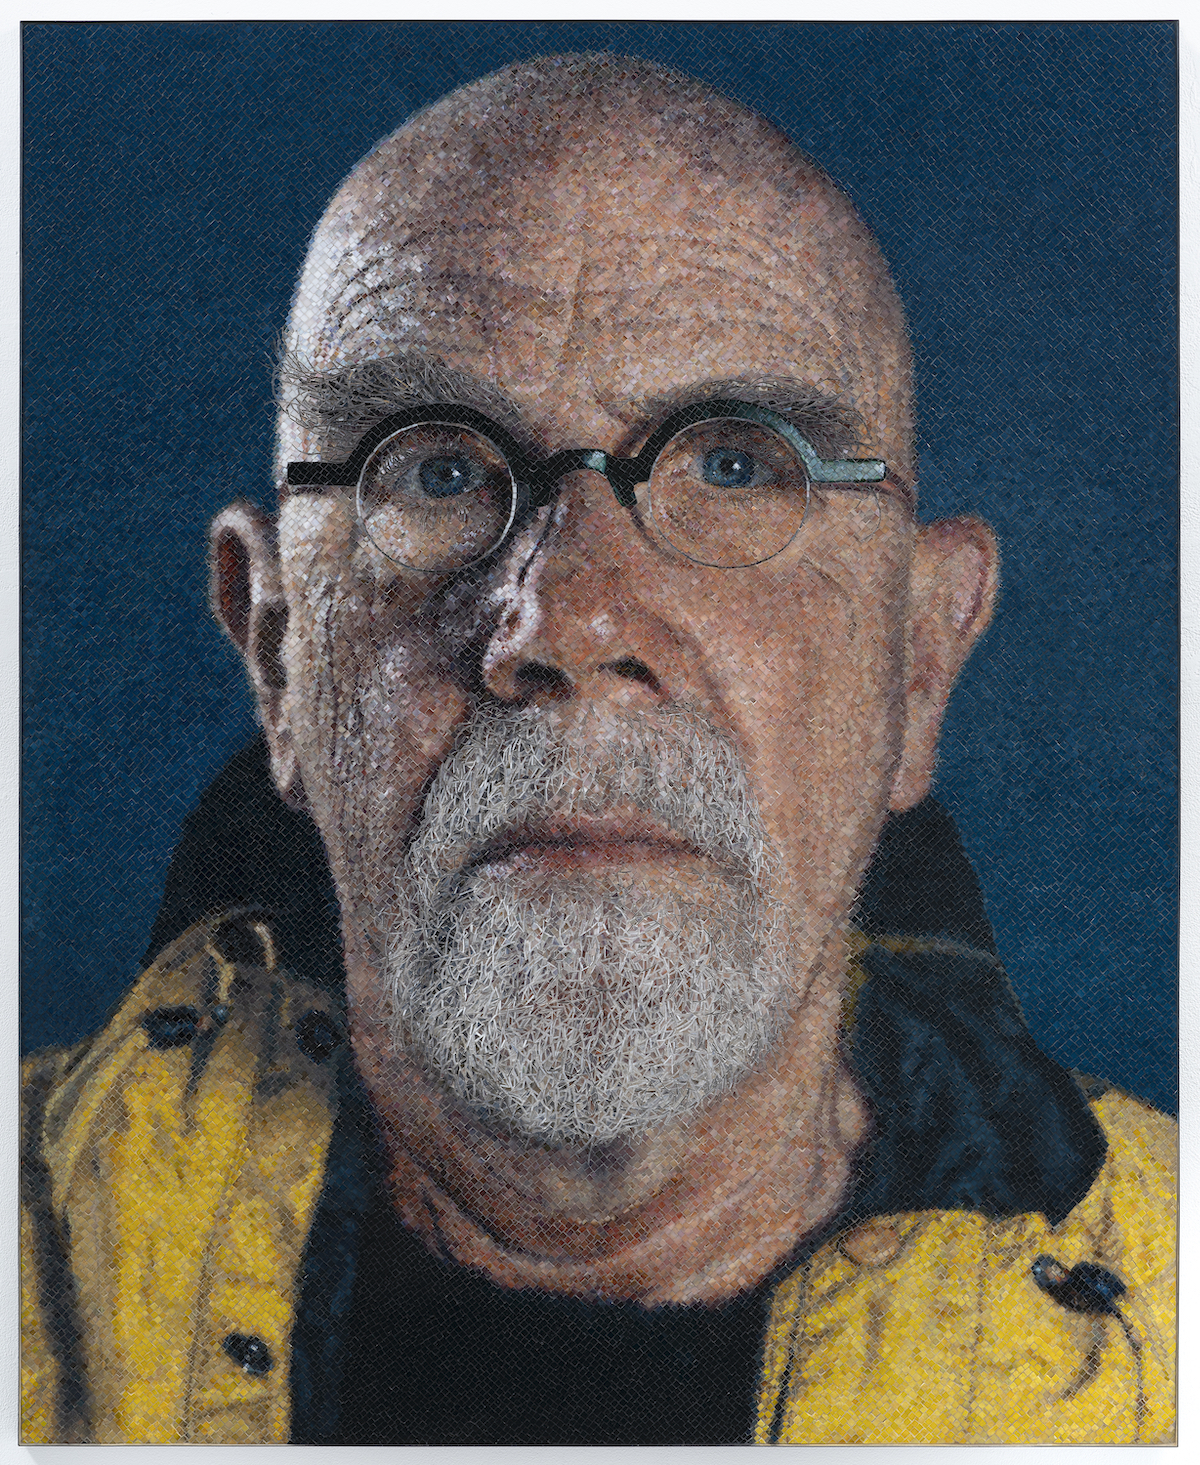 A portrait of a white man with a goatee and glasses wearing a yellow jacket.